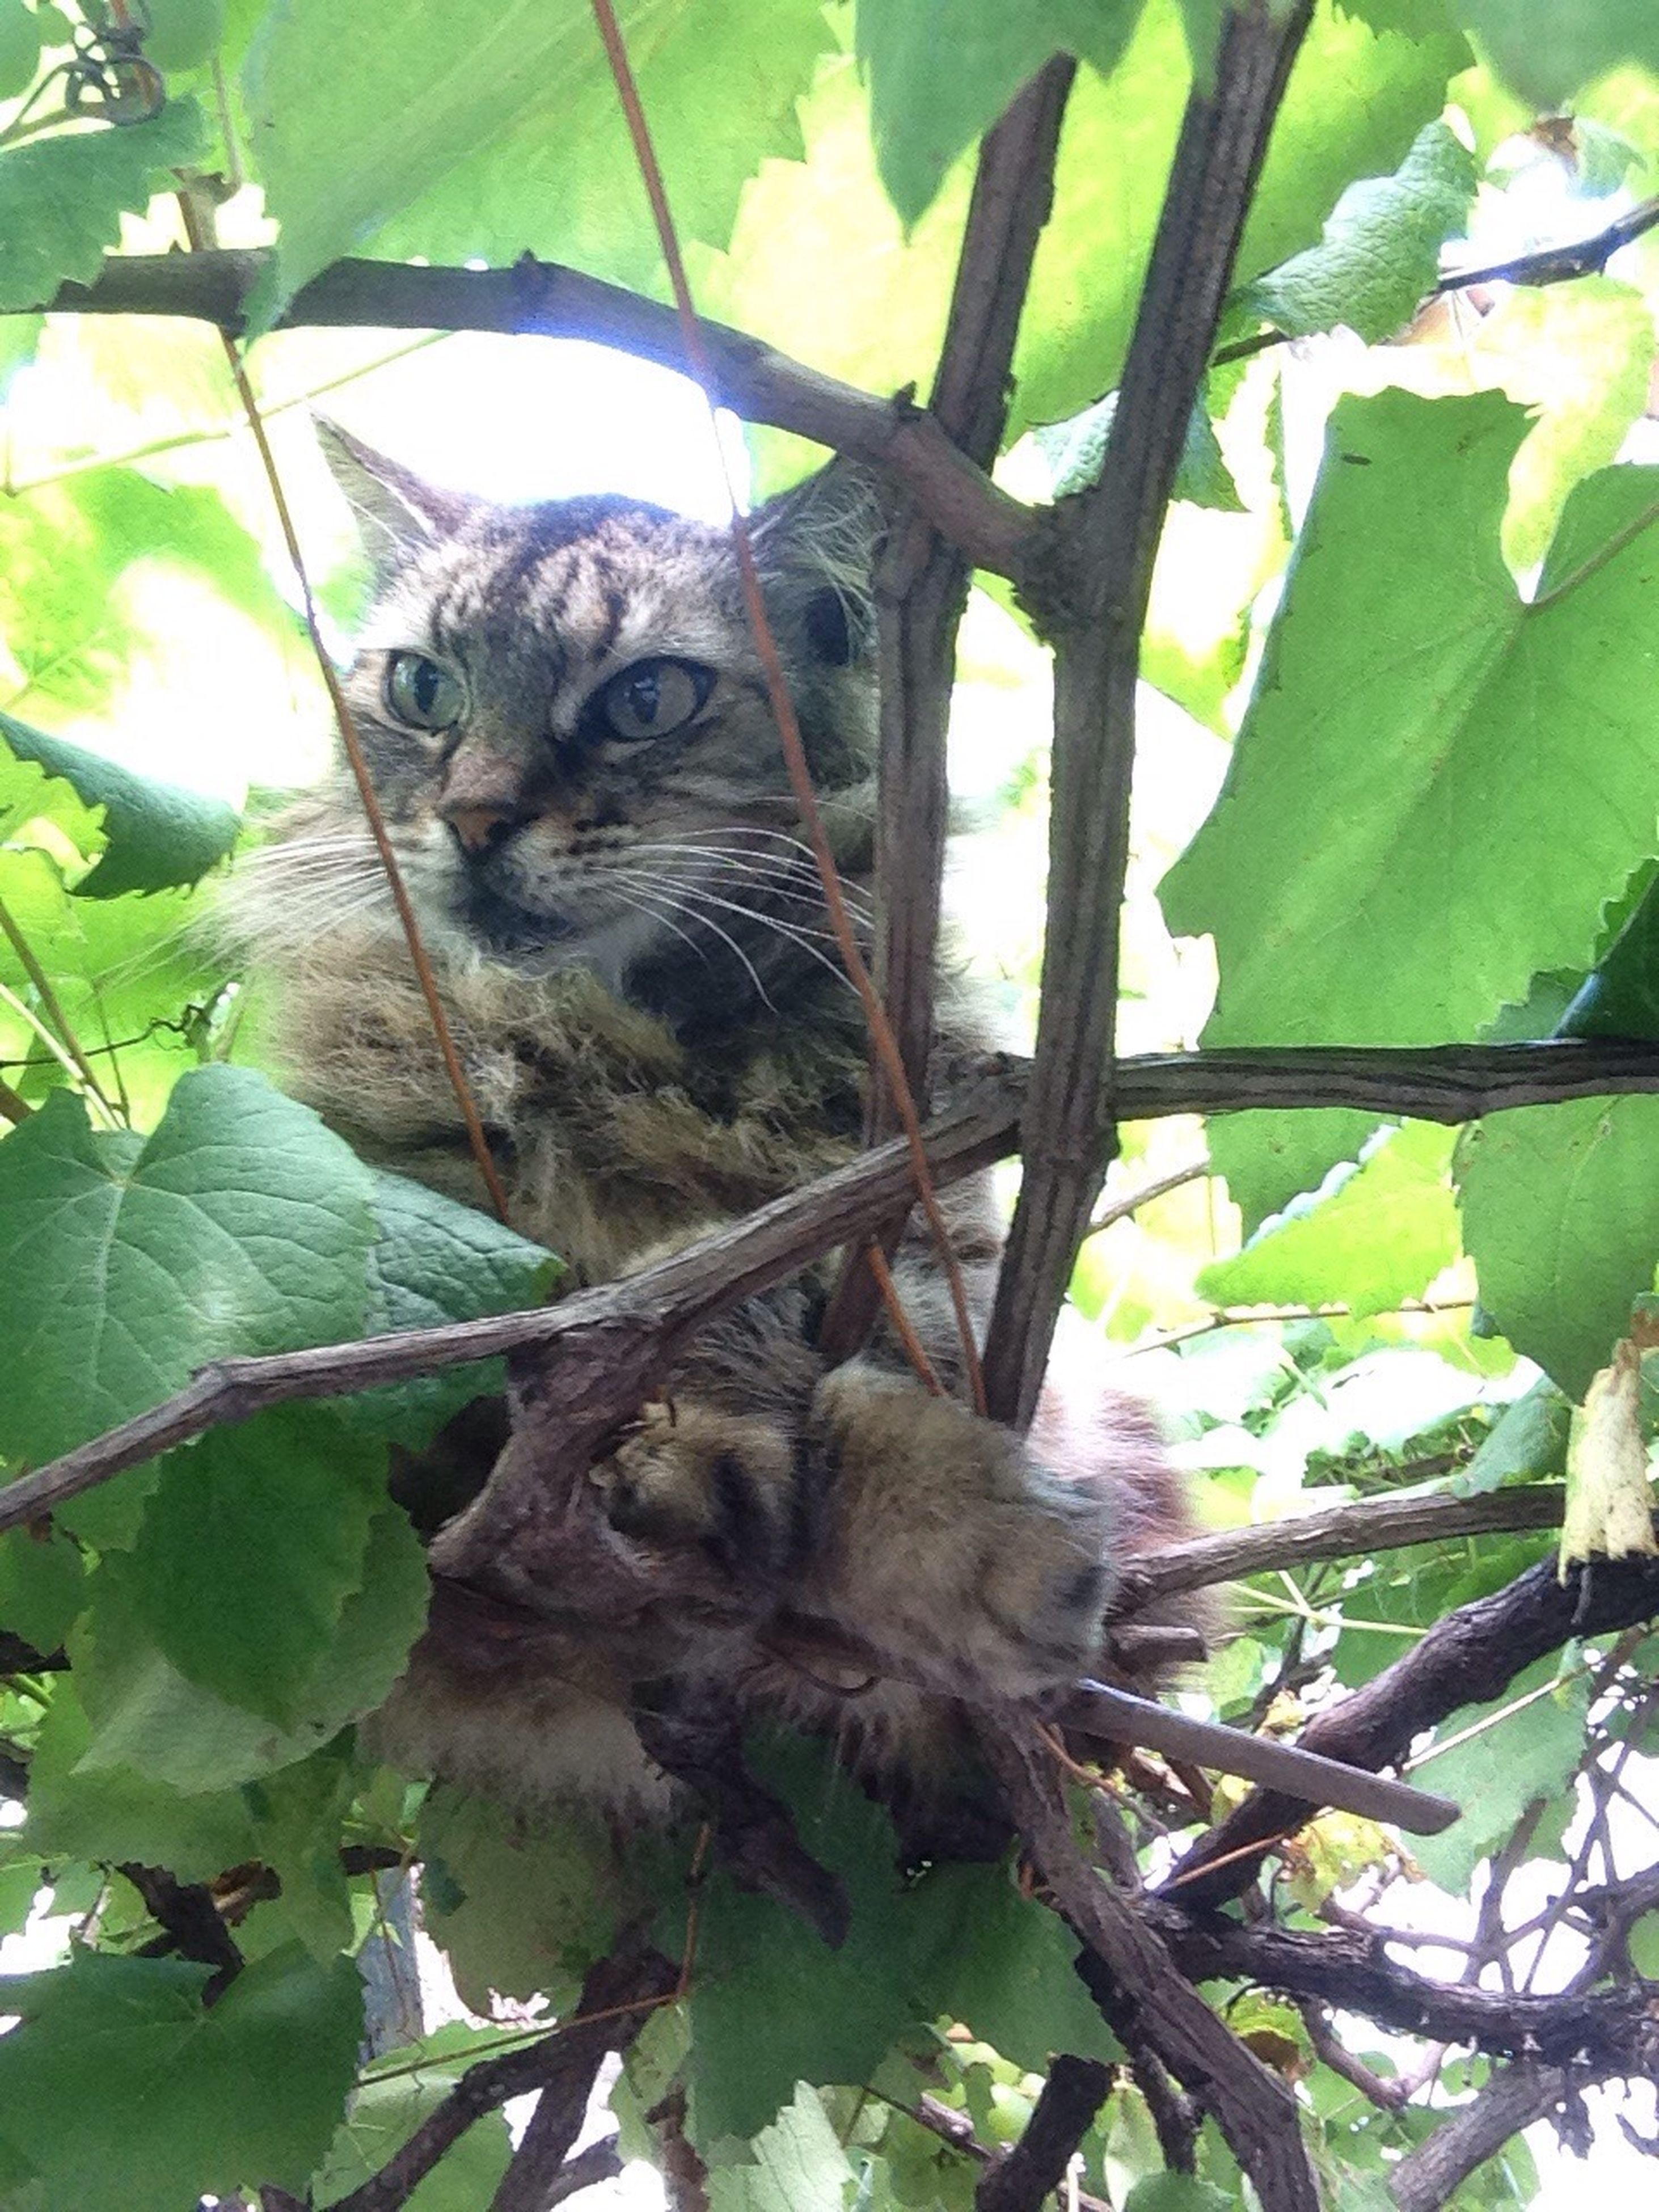 leaf, animal themes, looking at camera, plant, green color, domestic cat, growth, one animal, tree, nature, day, mammal, no people, portrait, outdoors, feline, animals in the wild, branch, close-up